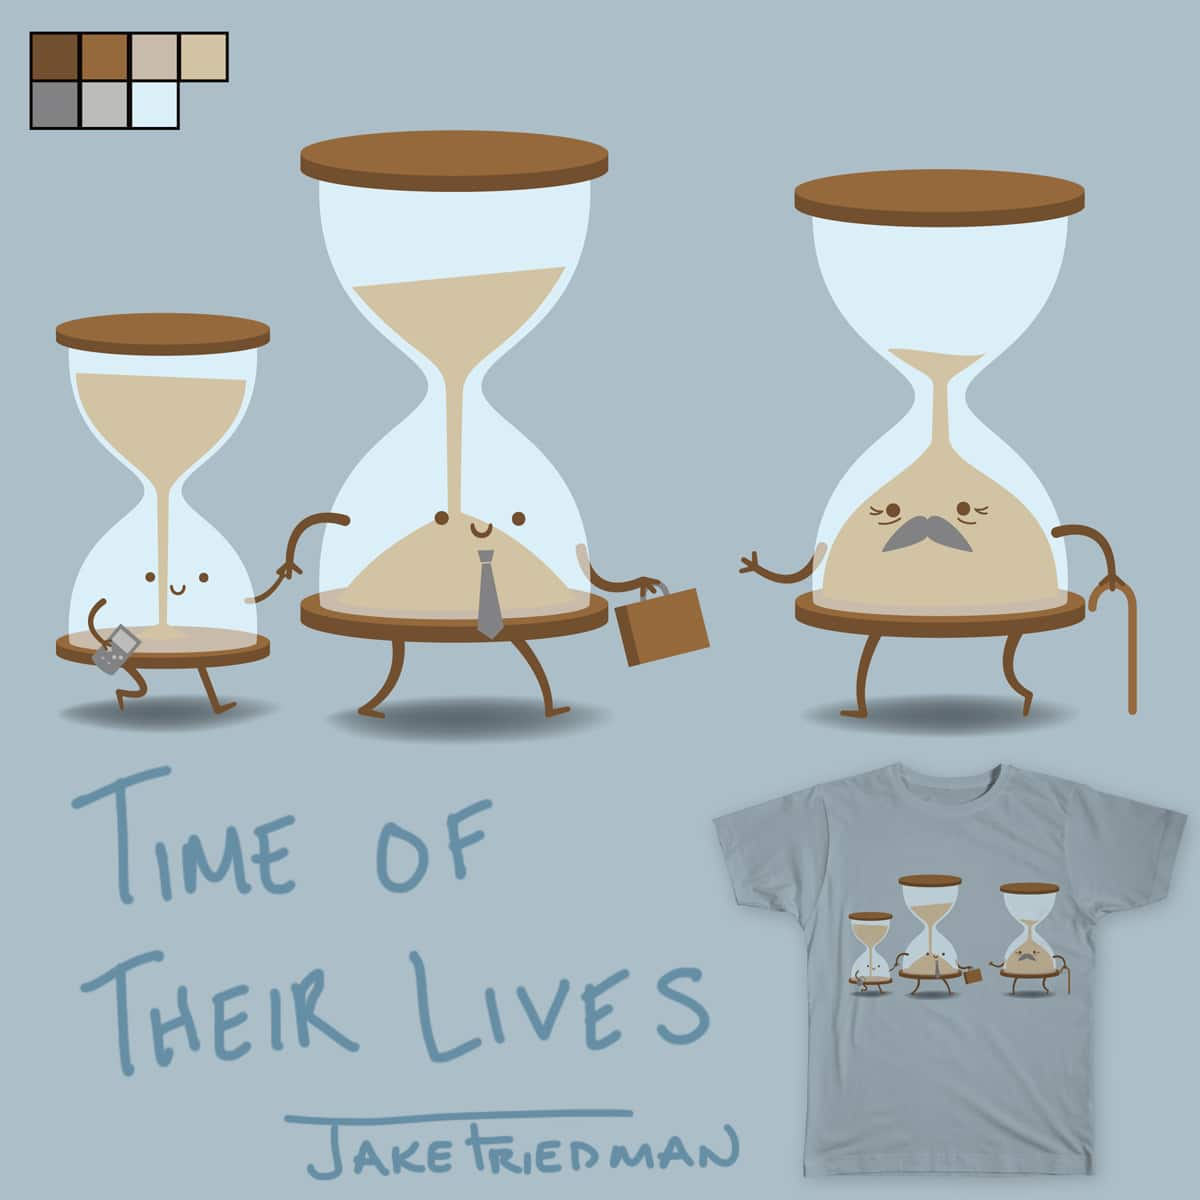 Time Of Their Lives by Jake Friedman on Threadless